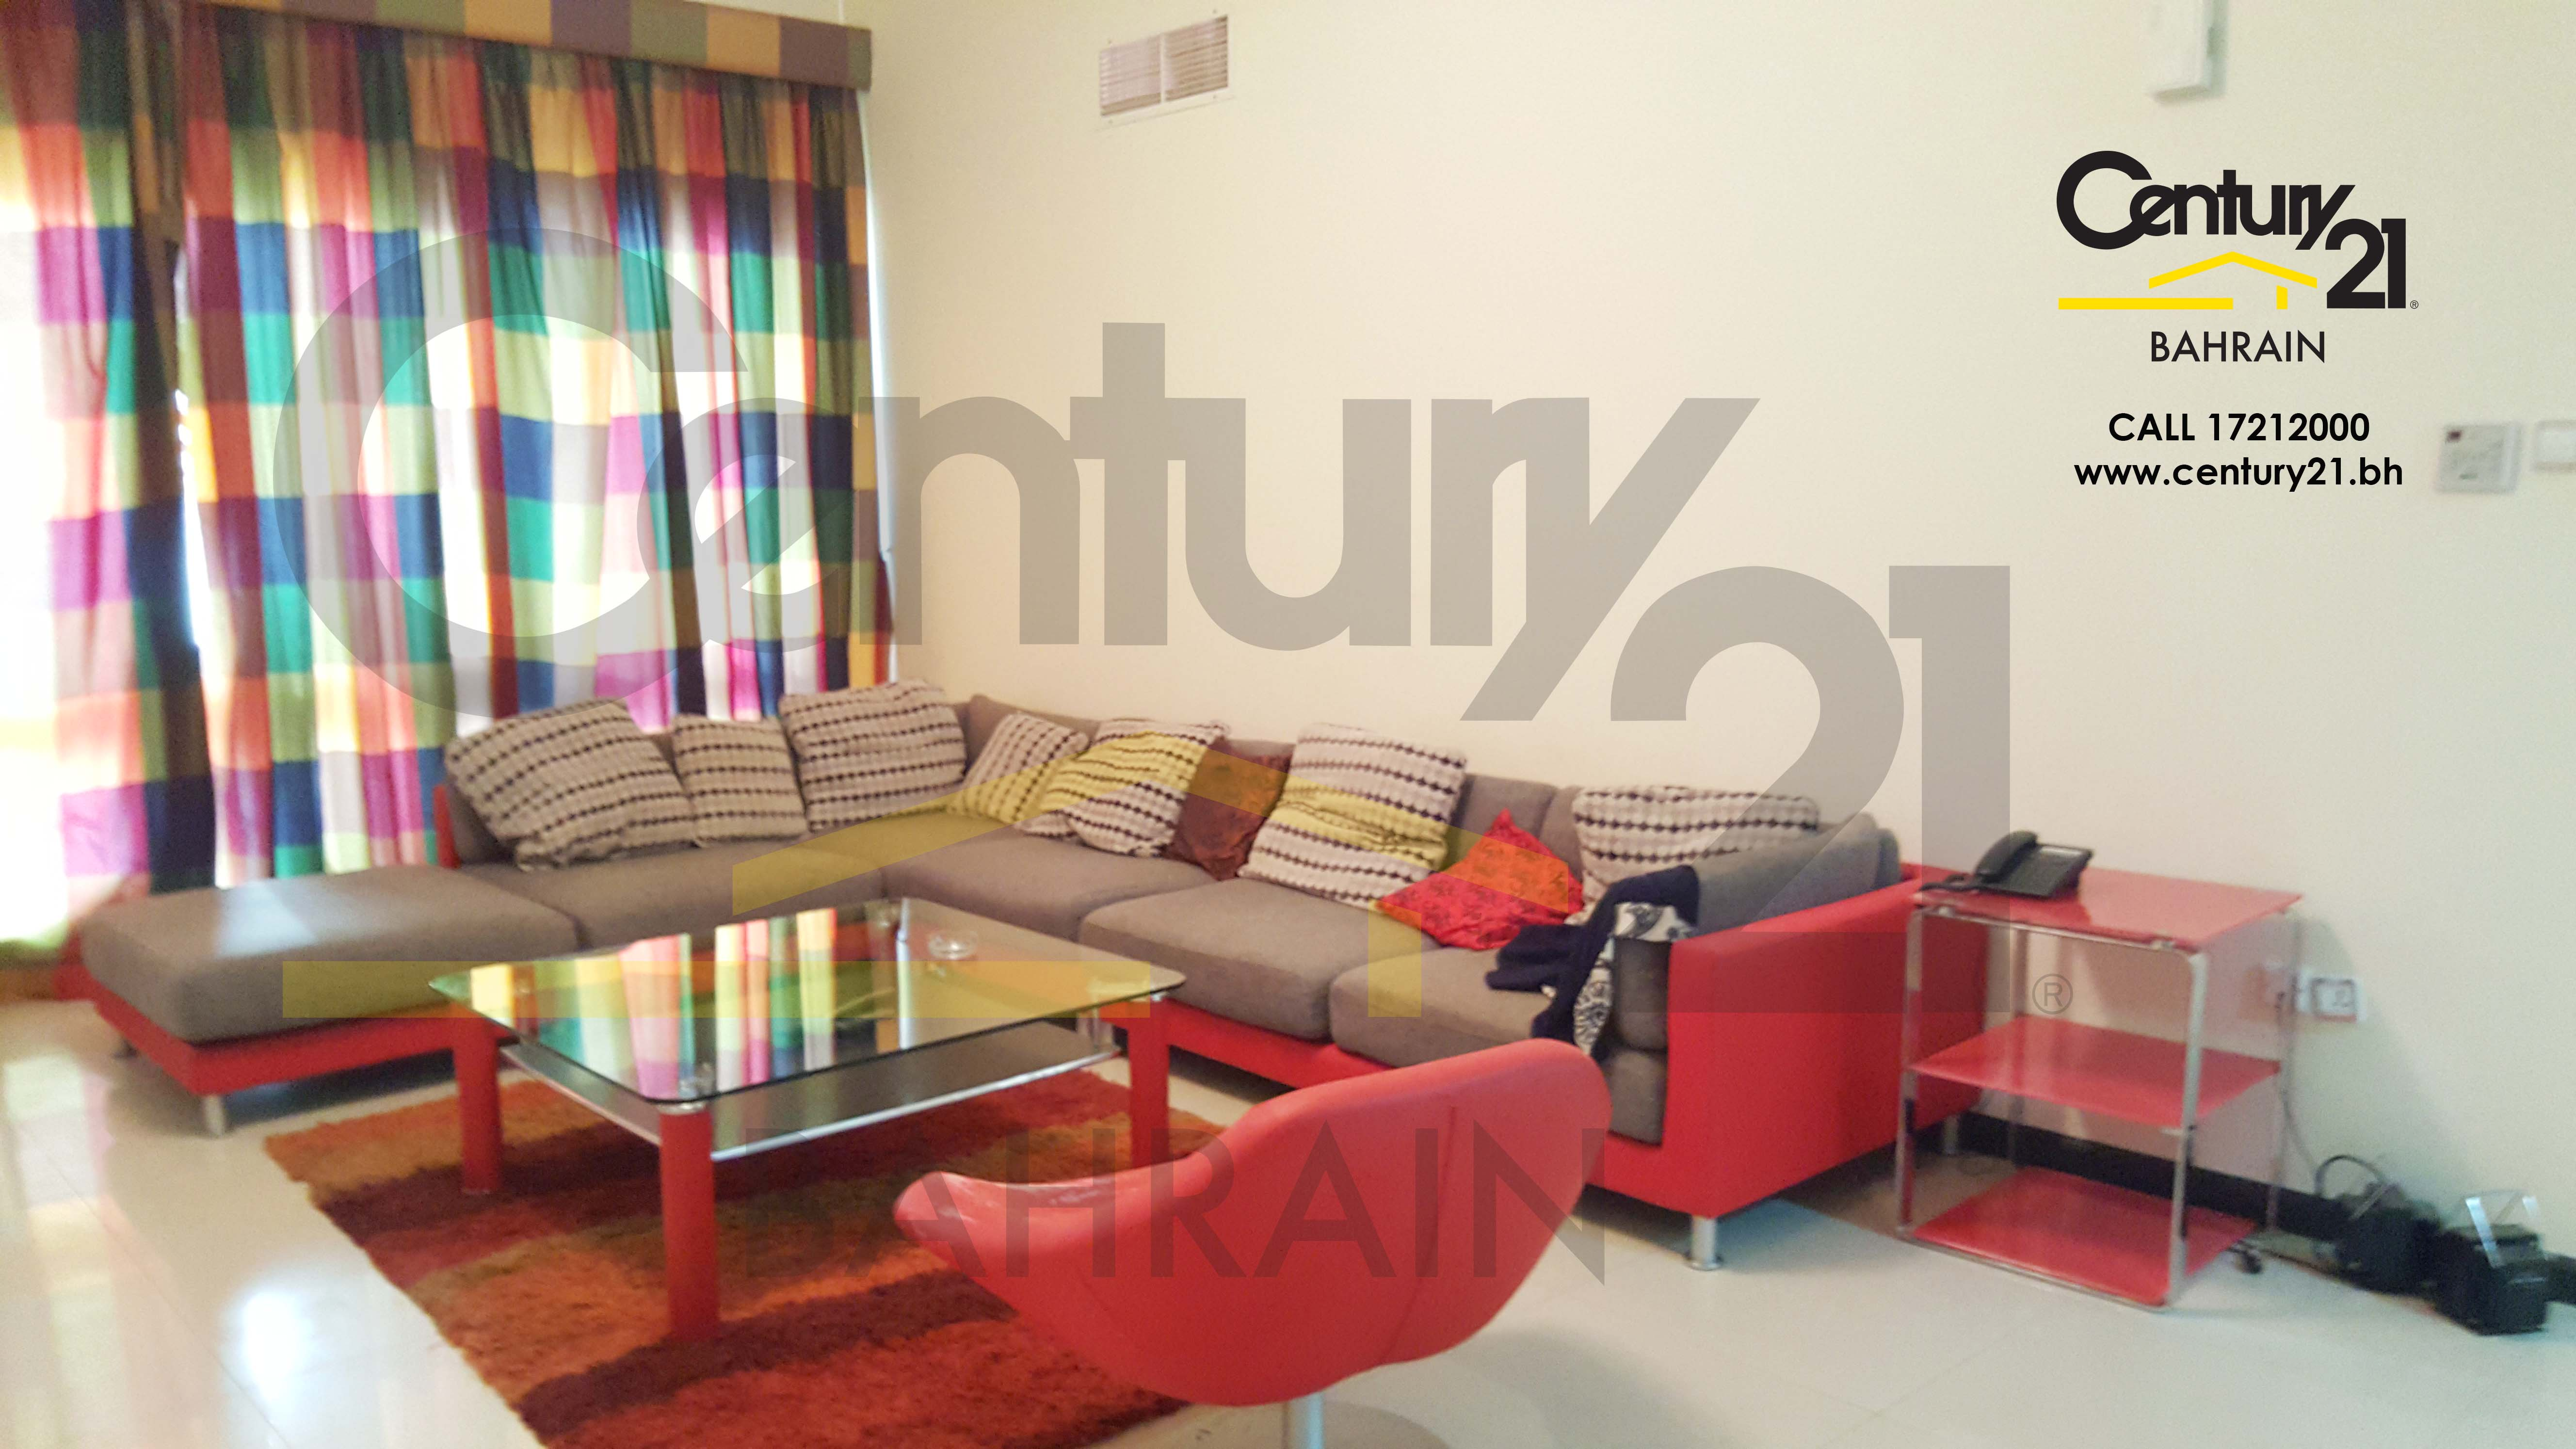 2 or 3 bedroom apartment for rent 3 bedroom apartment for rent in juffair fr679 century 21 2